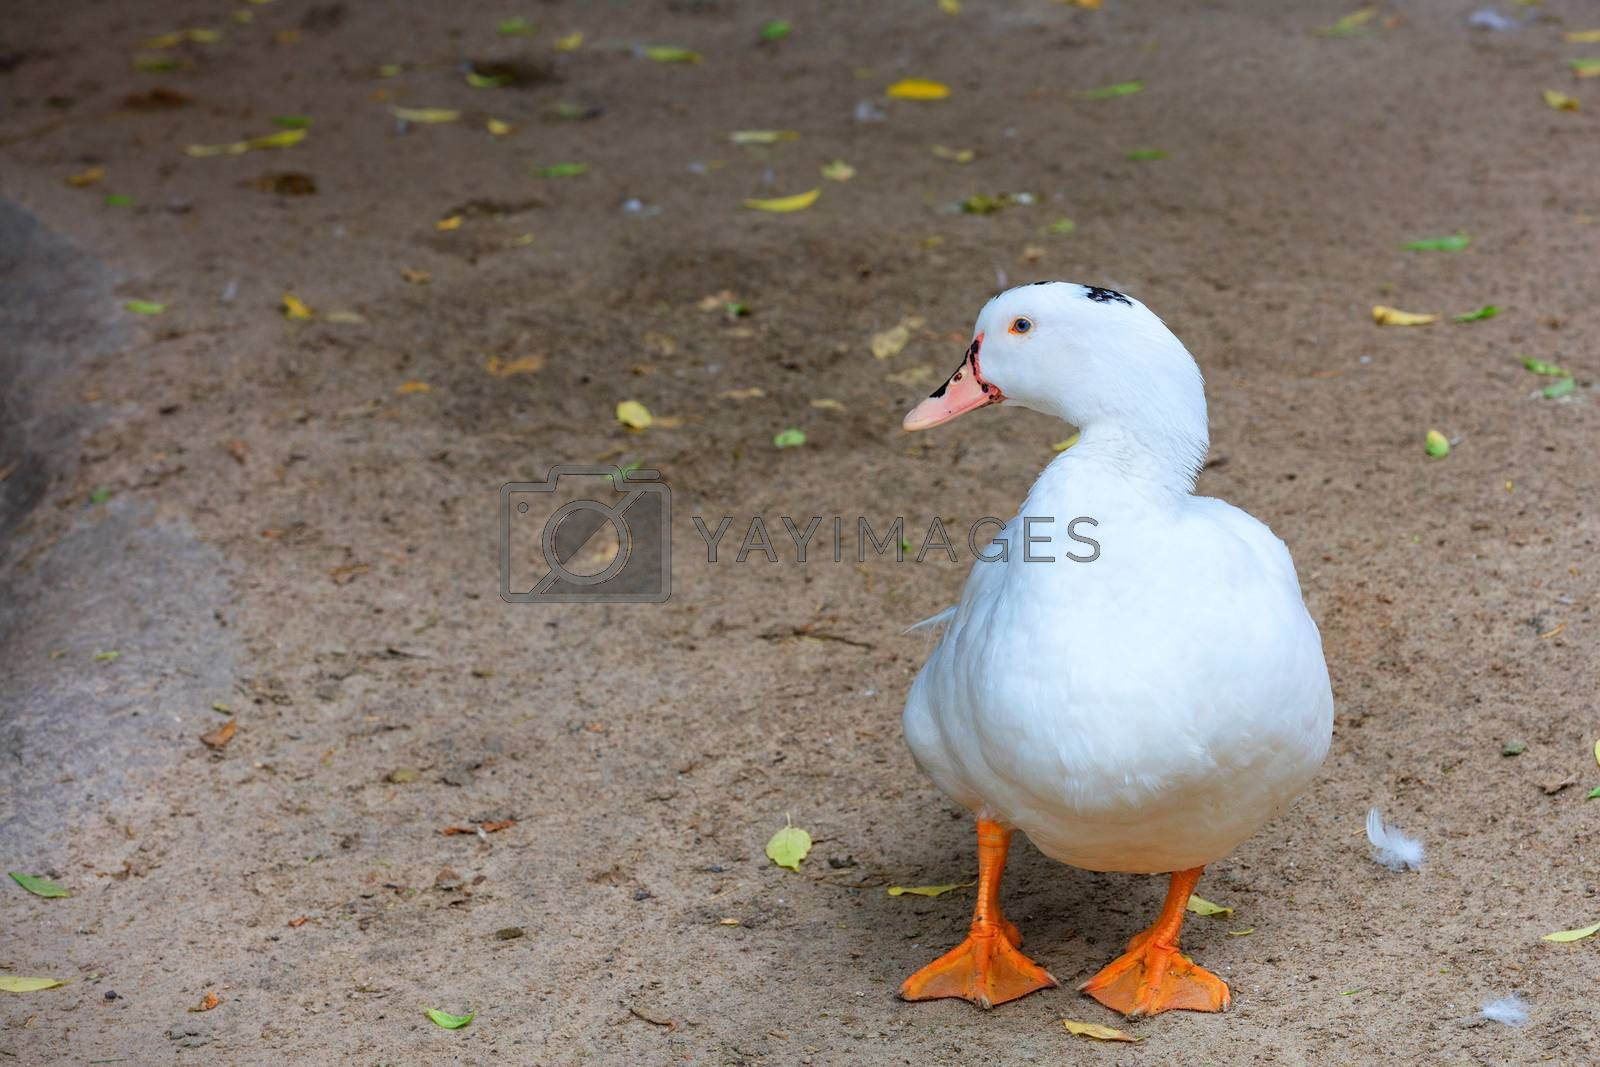 A white duck with bright orange paws walks along the sandy ground and looks to the left, copy space.